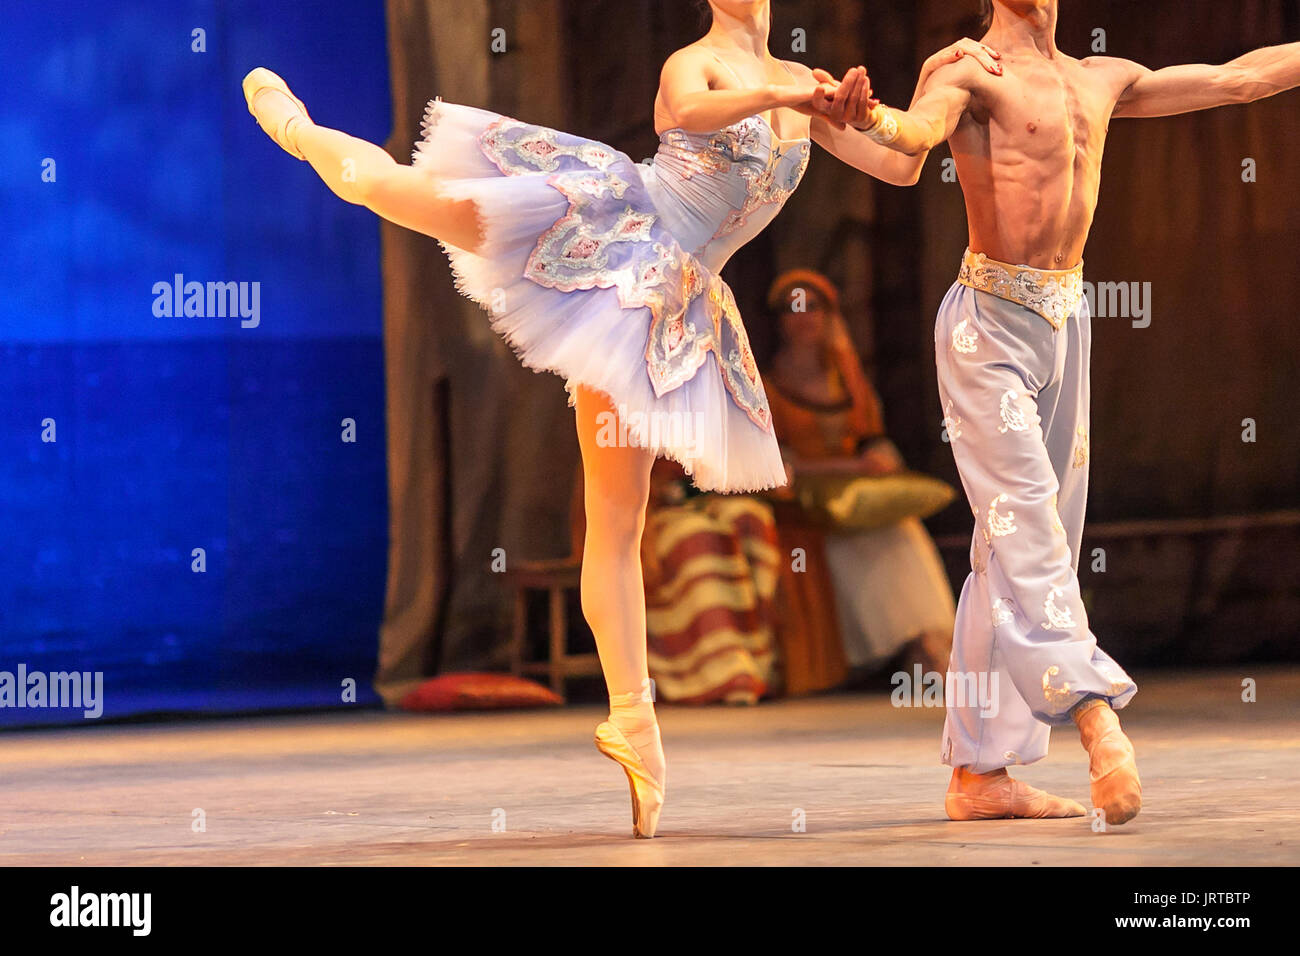 ballet, love, theater concept. dance duet of two persons, ballerina like porcelain statuette standing on one stretched toe and holding on to her tough male partner - Stock Image